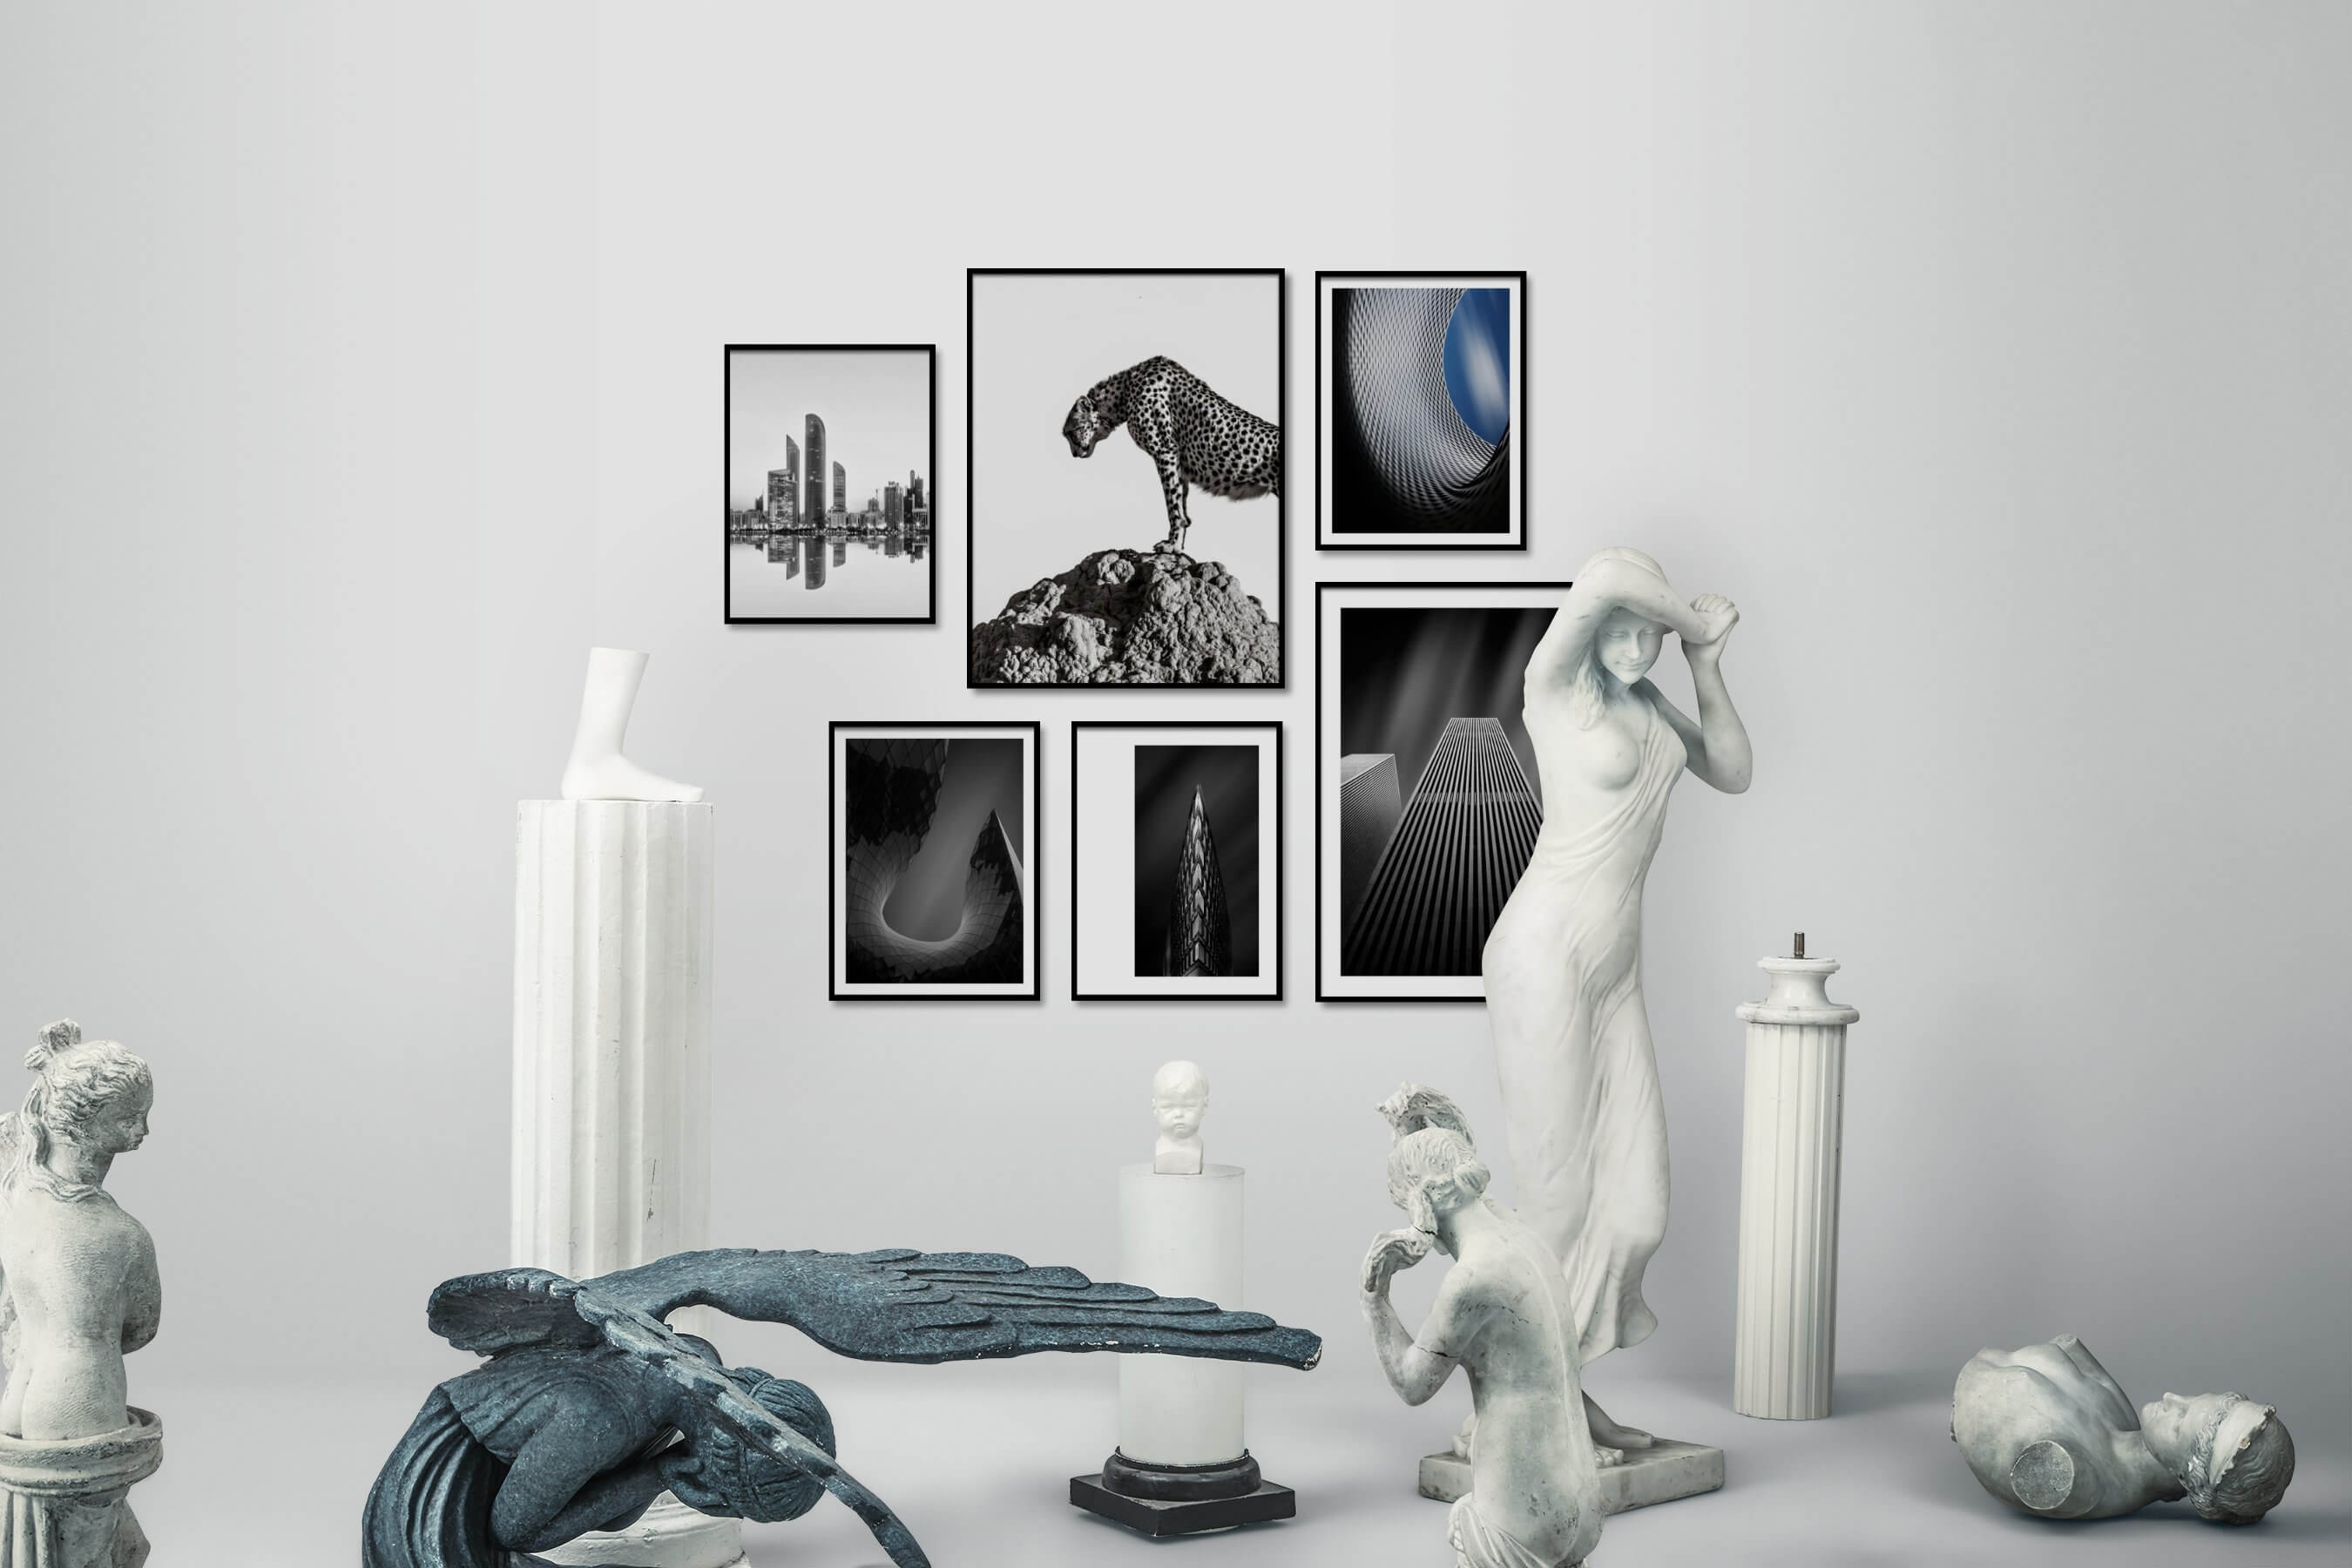 Gallery wall idea with six framed pictures arranged on a wall depicting Black & White, City Life, Bright Tones, For the Moderate, Animals, and For the Minimalist